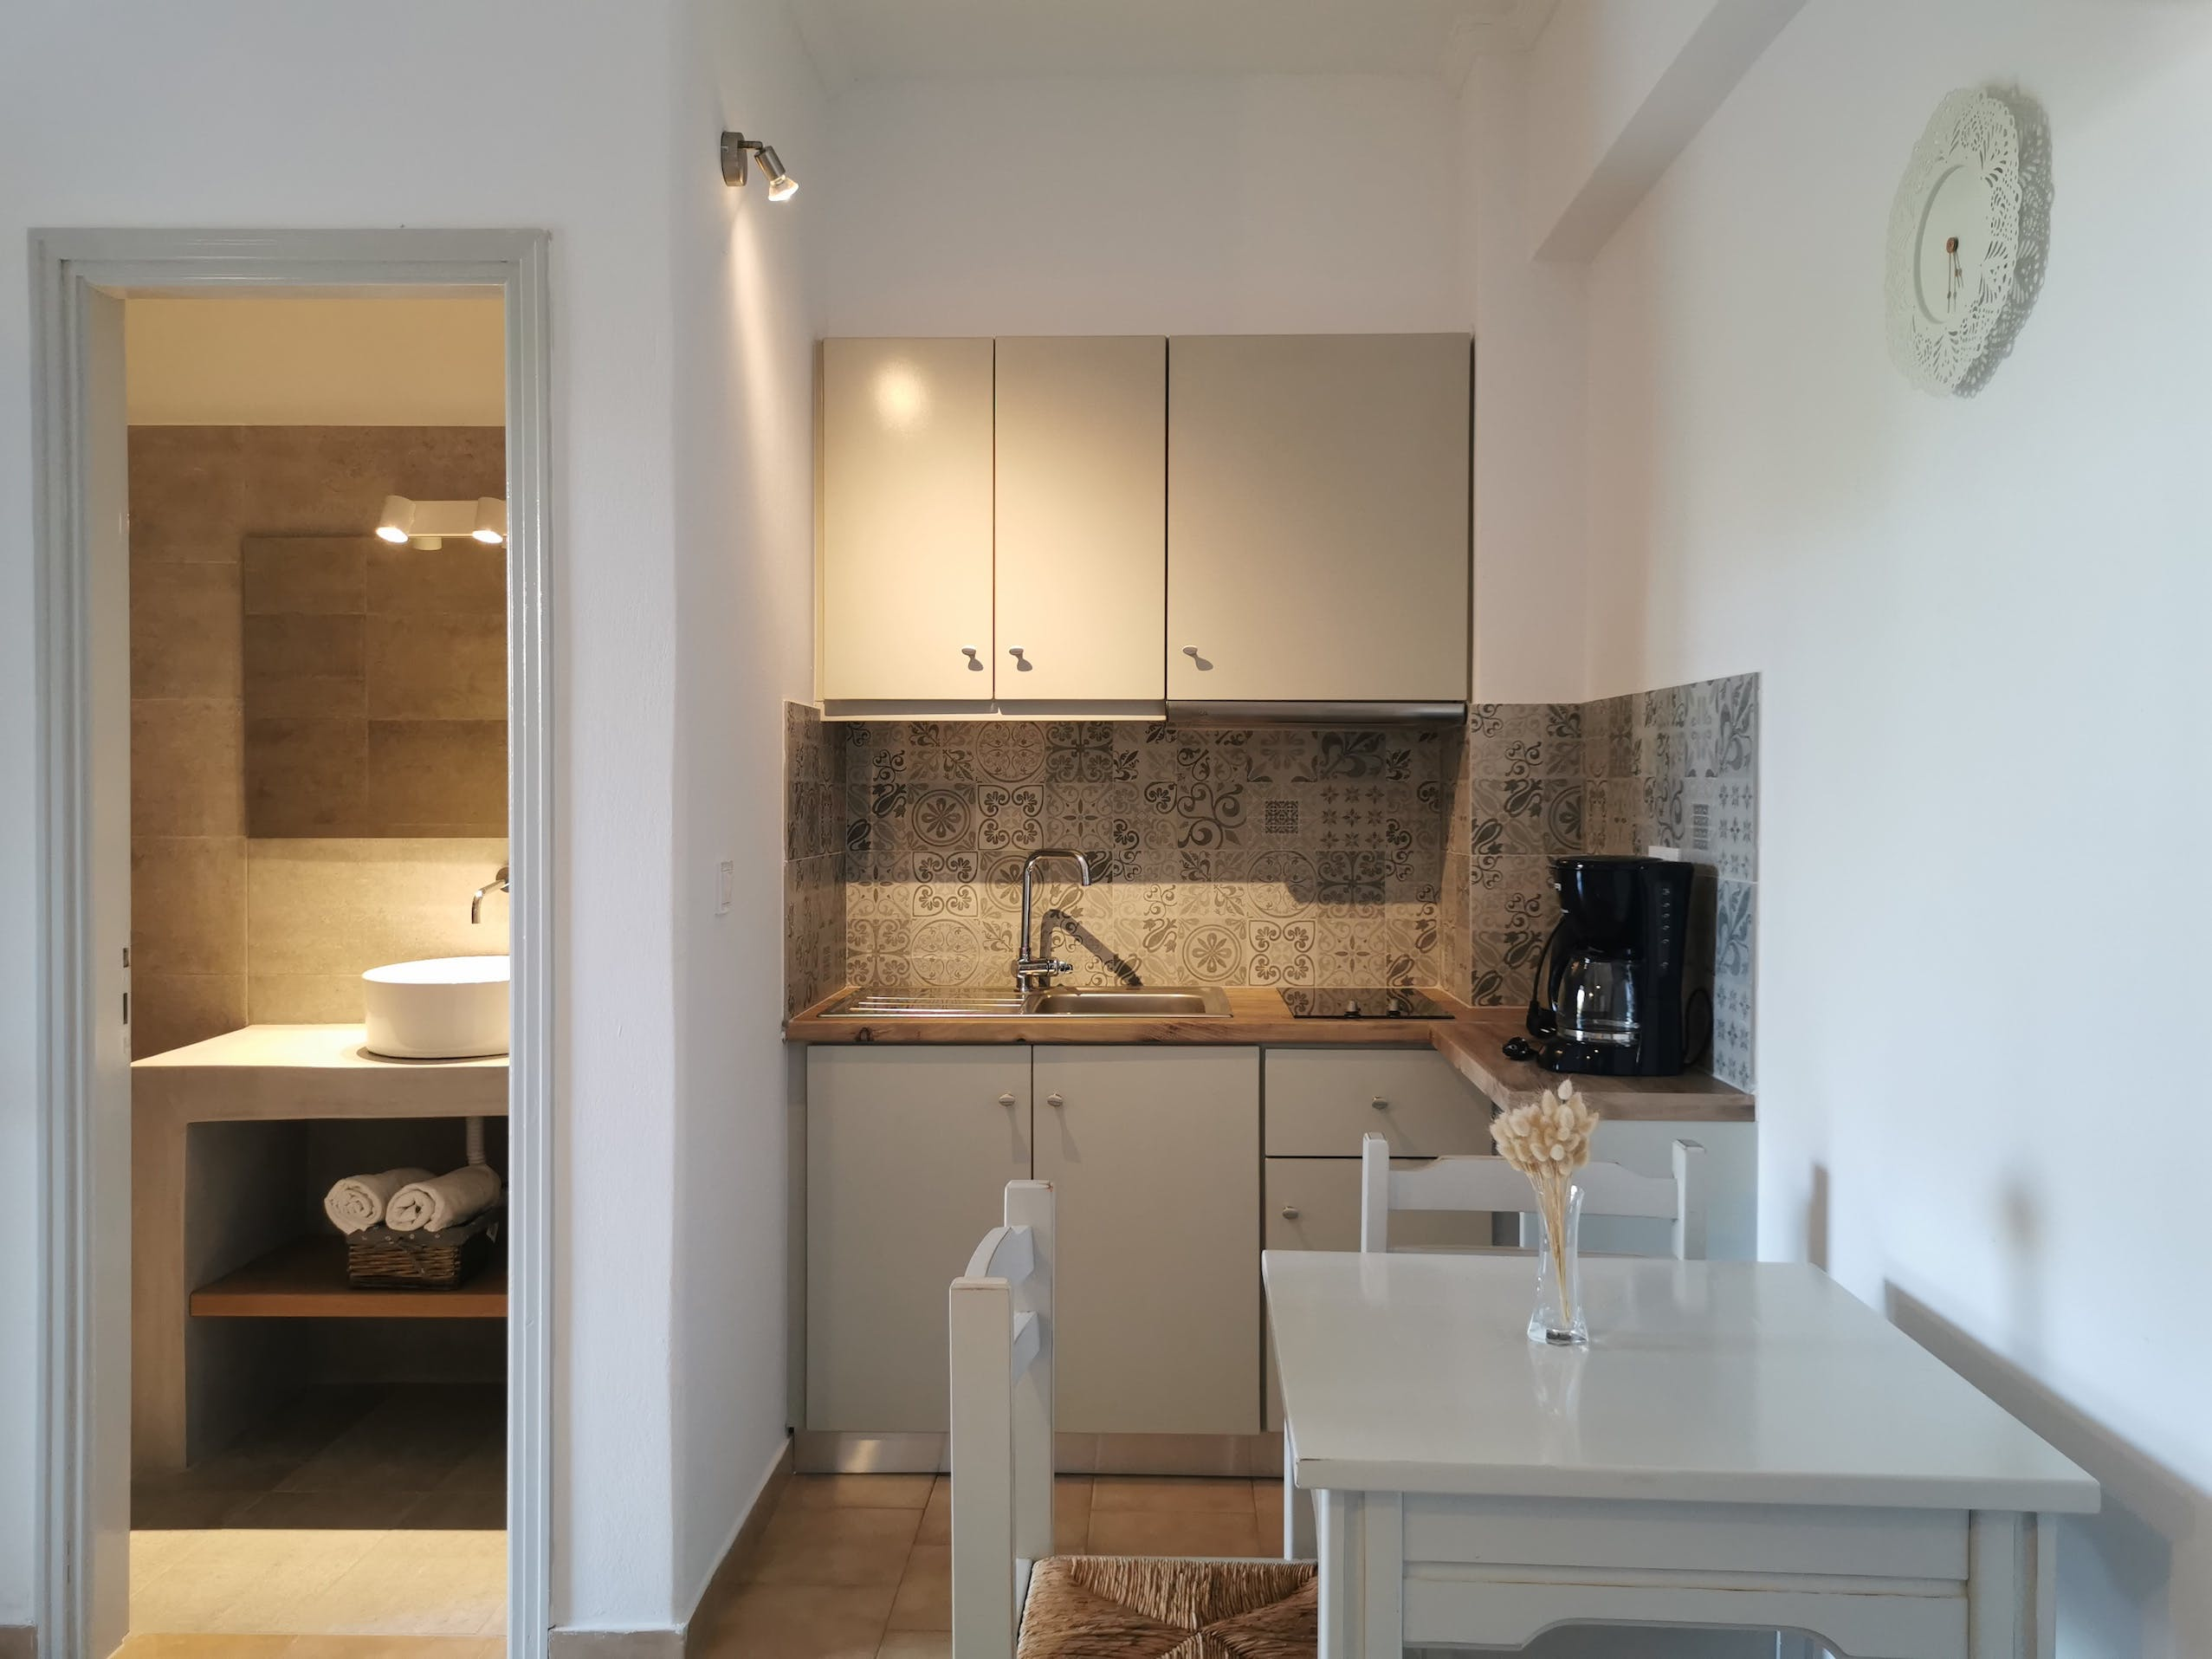 Triple room with terrace kitchen and bathroom